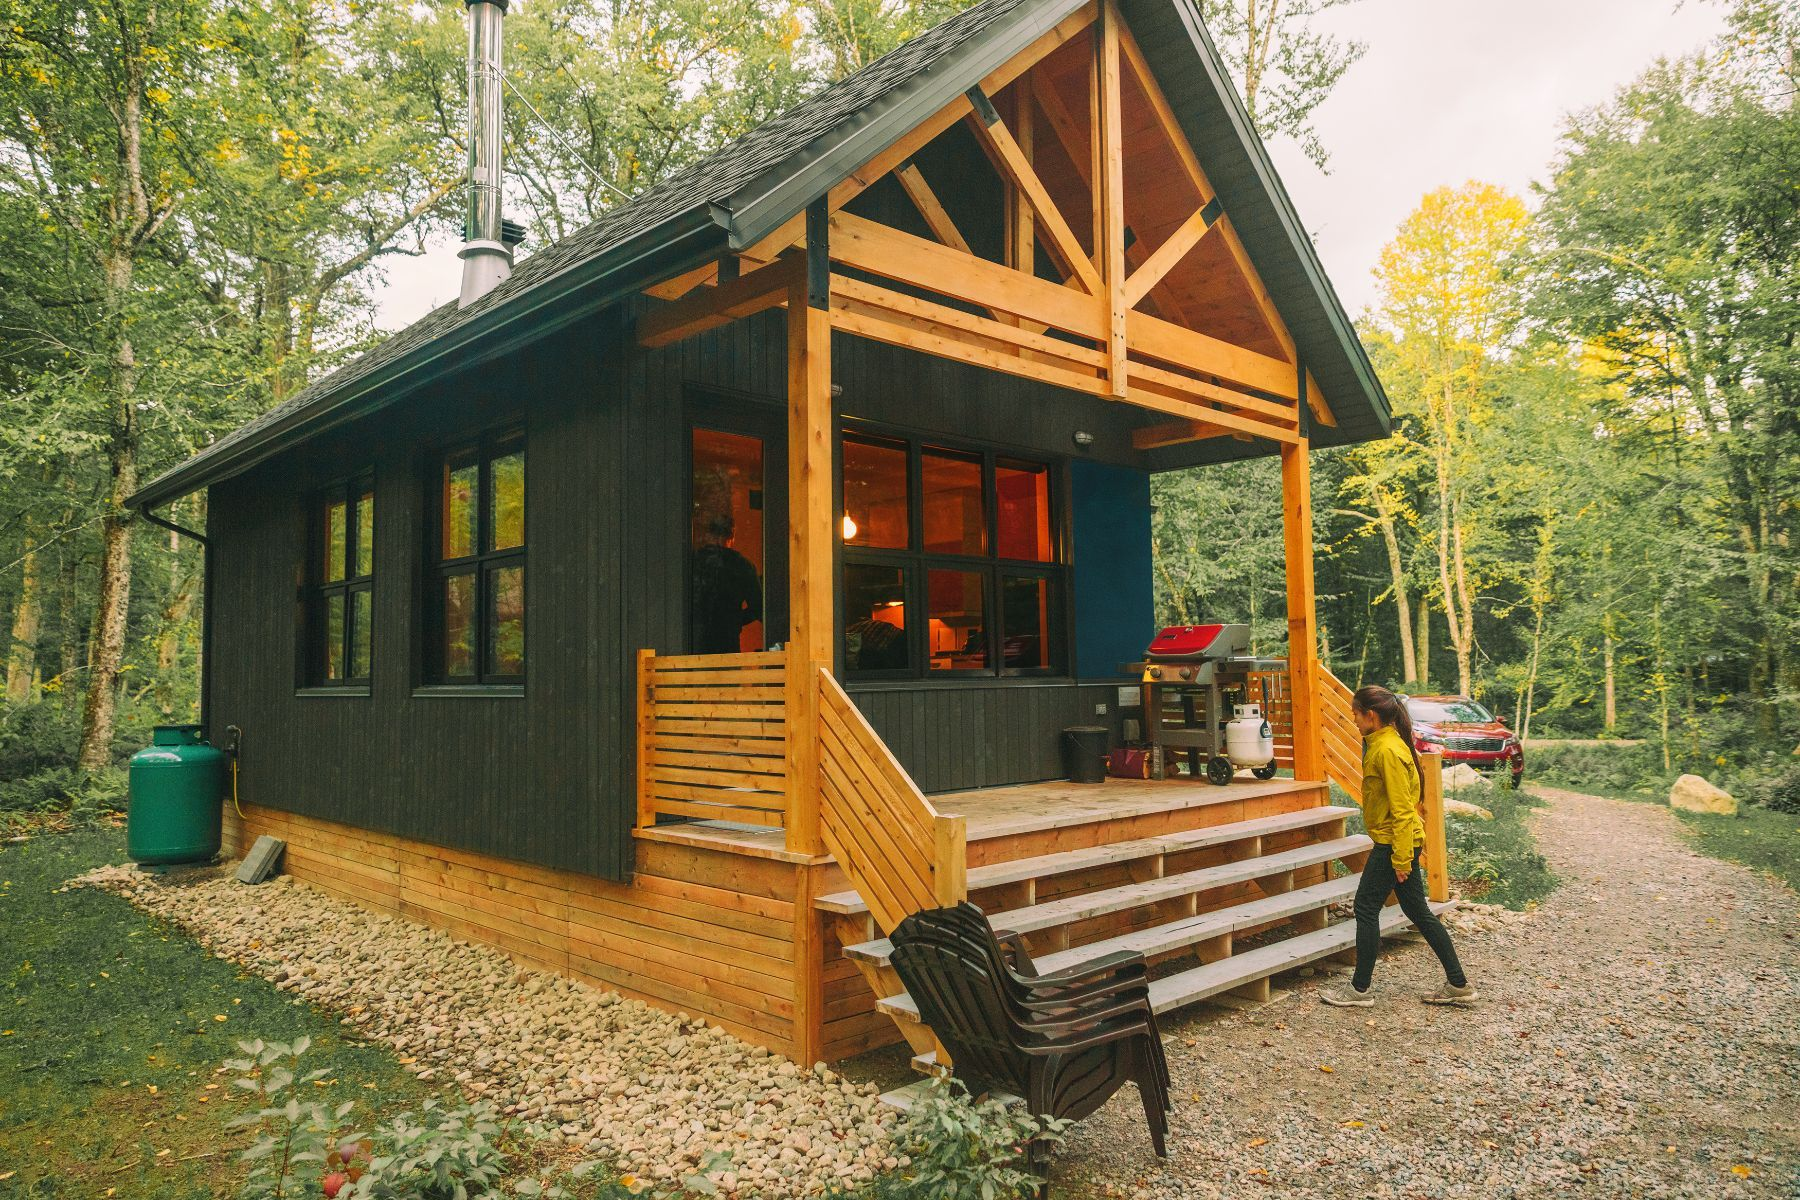 Small Log Cabin Home in woods